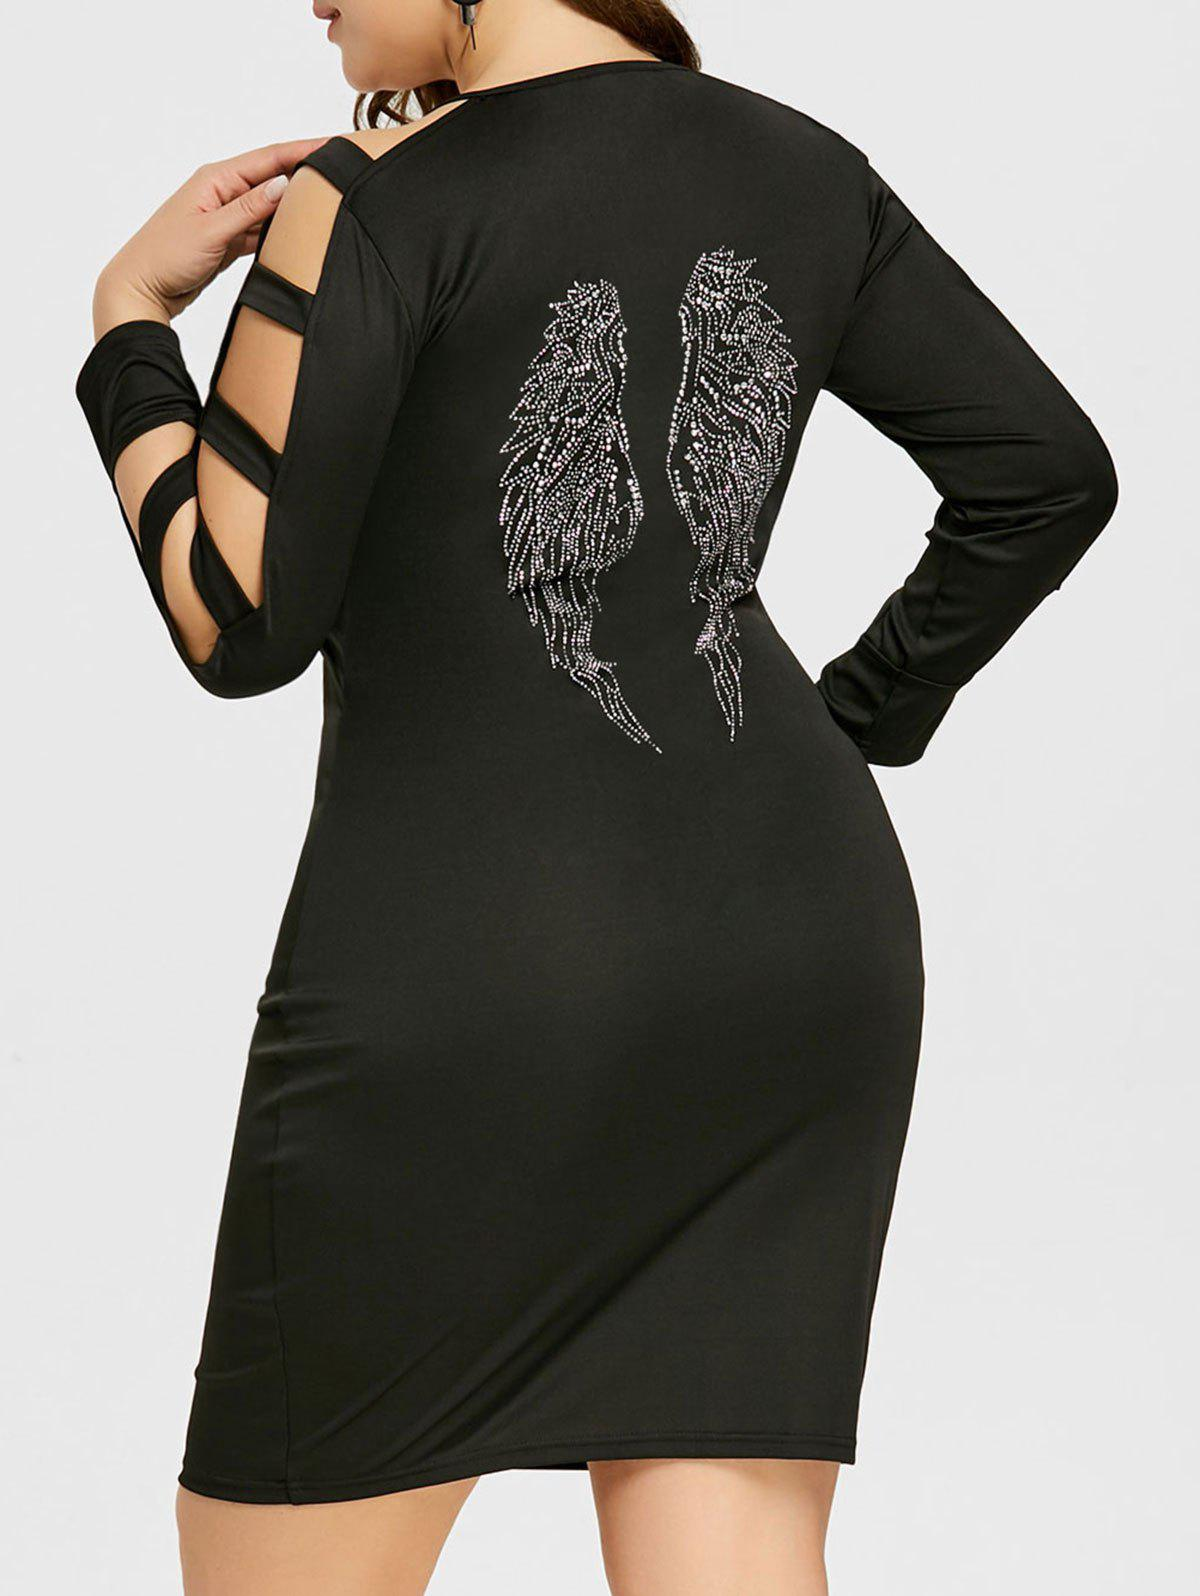 Hot Plus Size Ladder Cut Sequined Embellished Sheath Dress